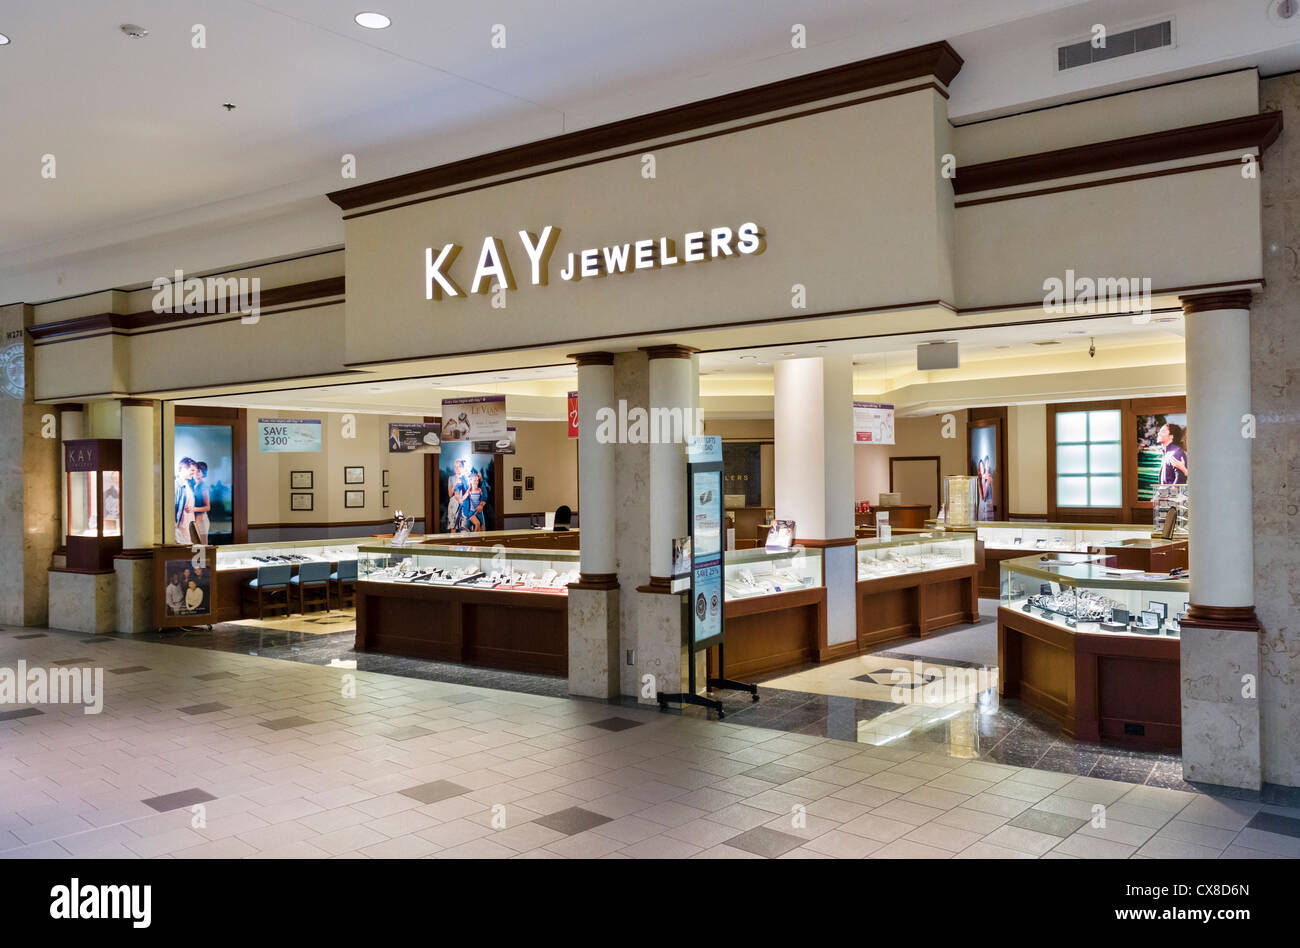 f5178ec14 Kay Jewelers store in the Mall of America, Bloomington, Minneapolis,  Minnesota, USA